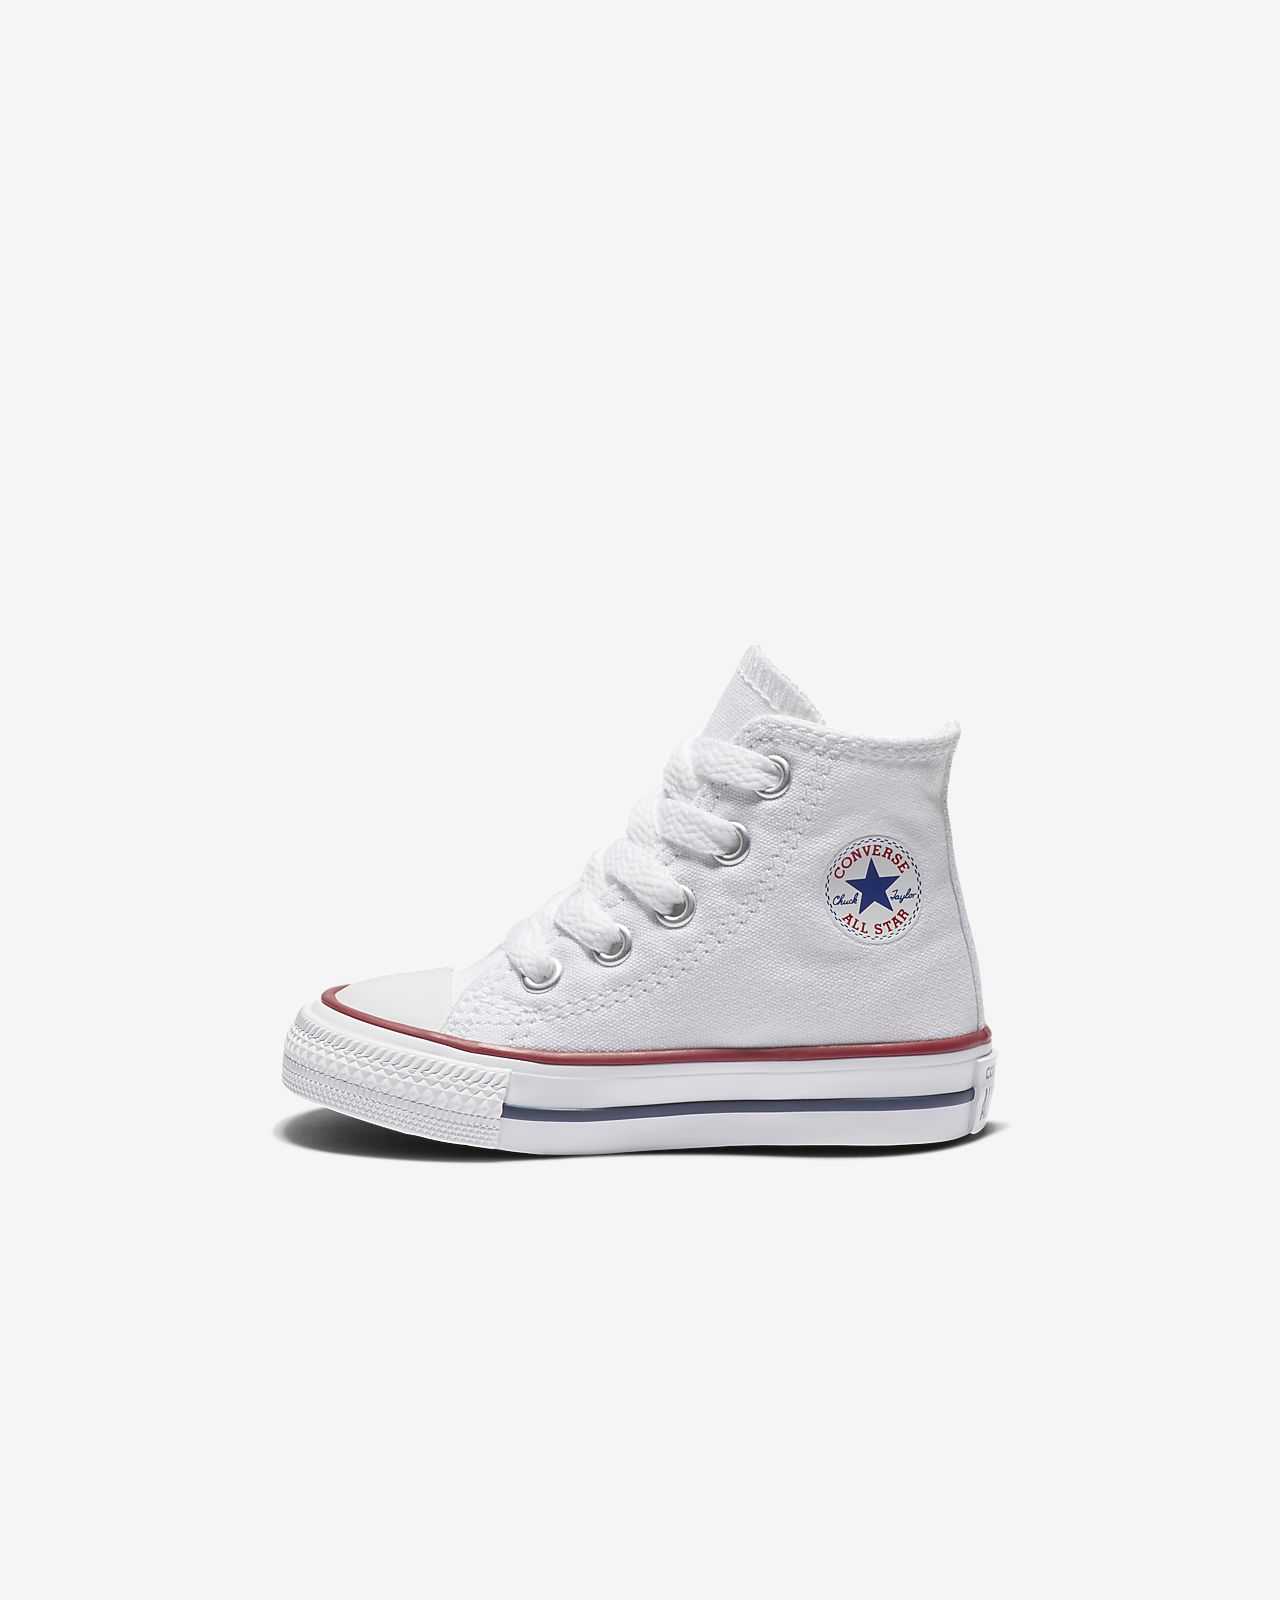 45ee04801 Converse Chuck Taylor All Star High Top (2c-10c) Infant Toddler Shoe ...